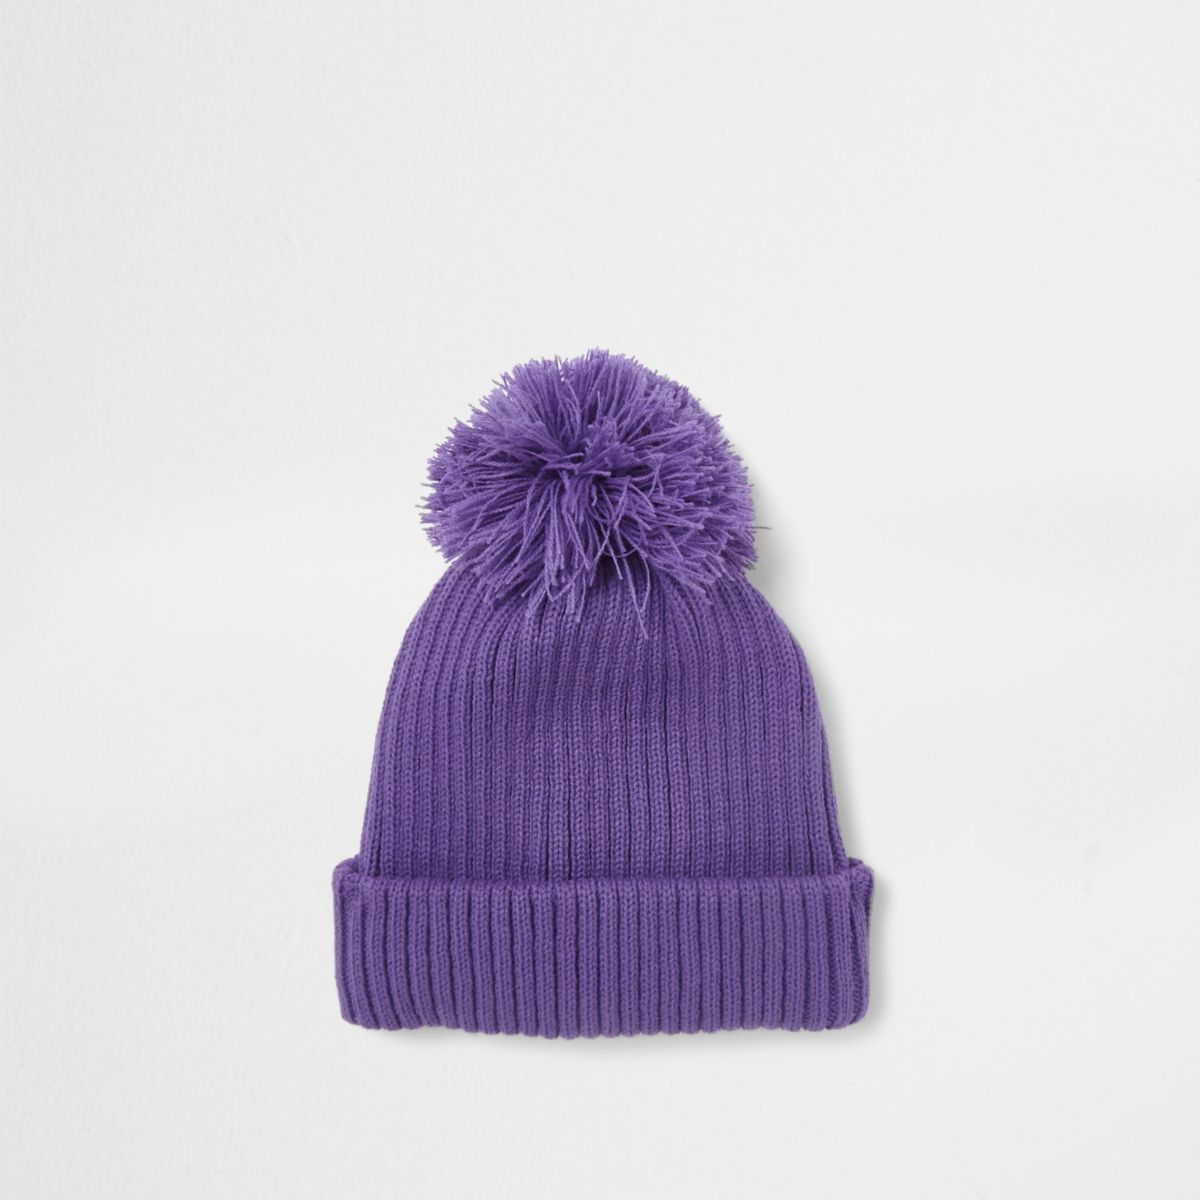 Purple bobble pom pom beanie hat